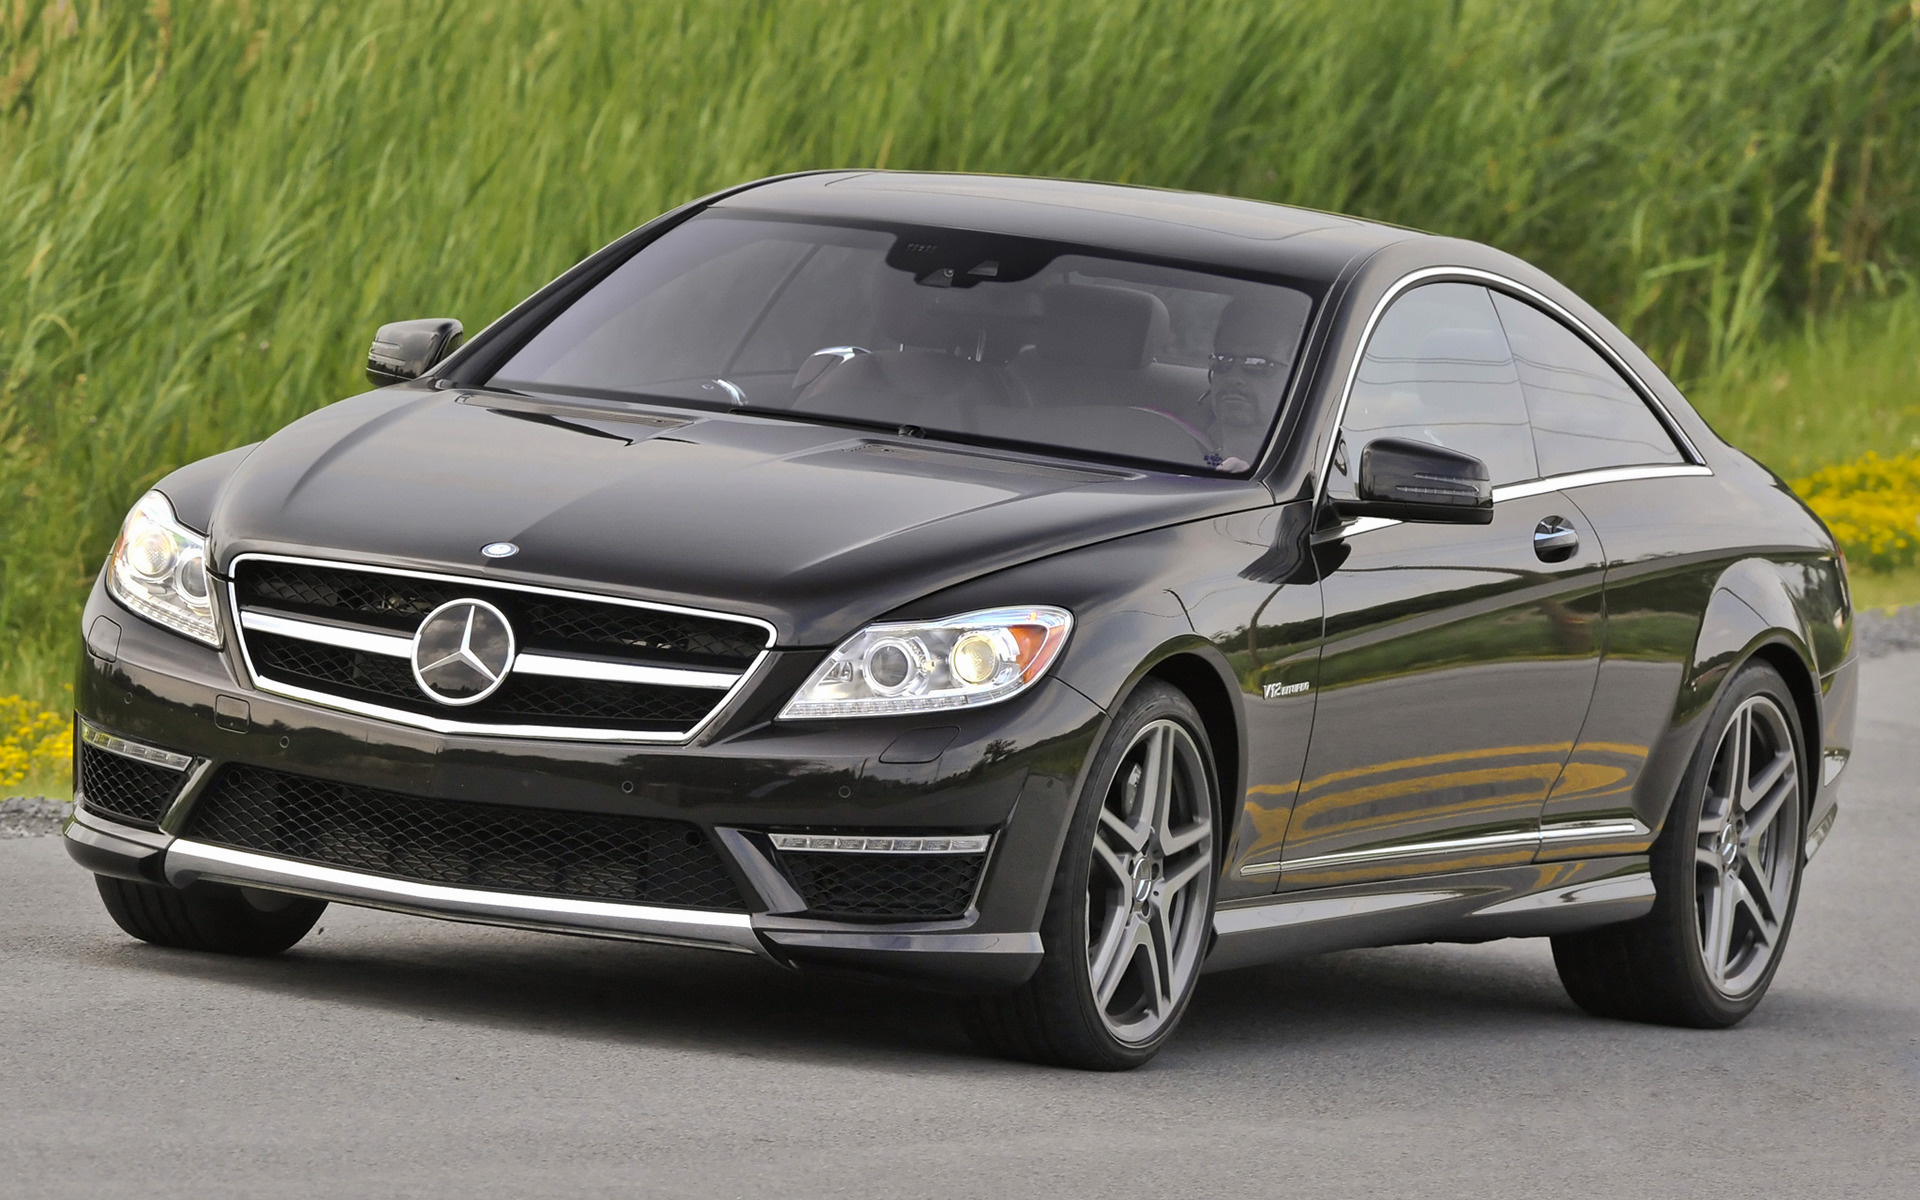 Mercedes-Benz CL 65 AMG (2010) US Wallpapers and HD Images - Car Pixel